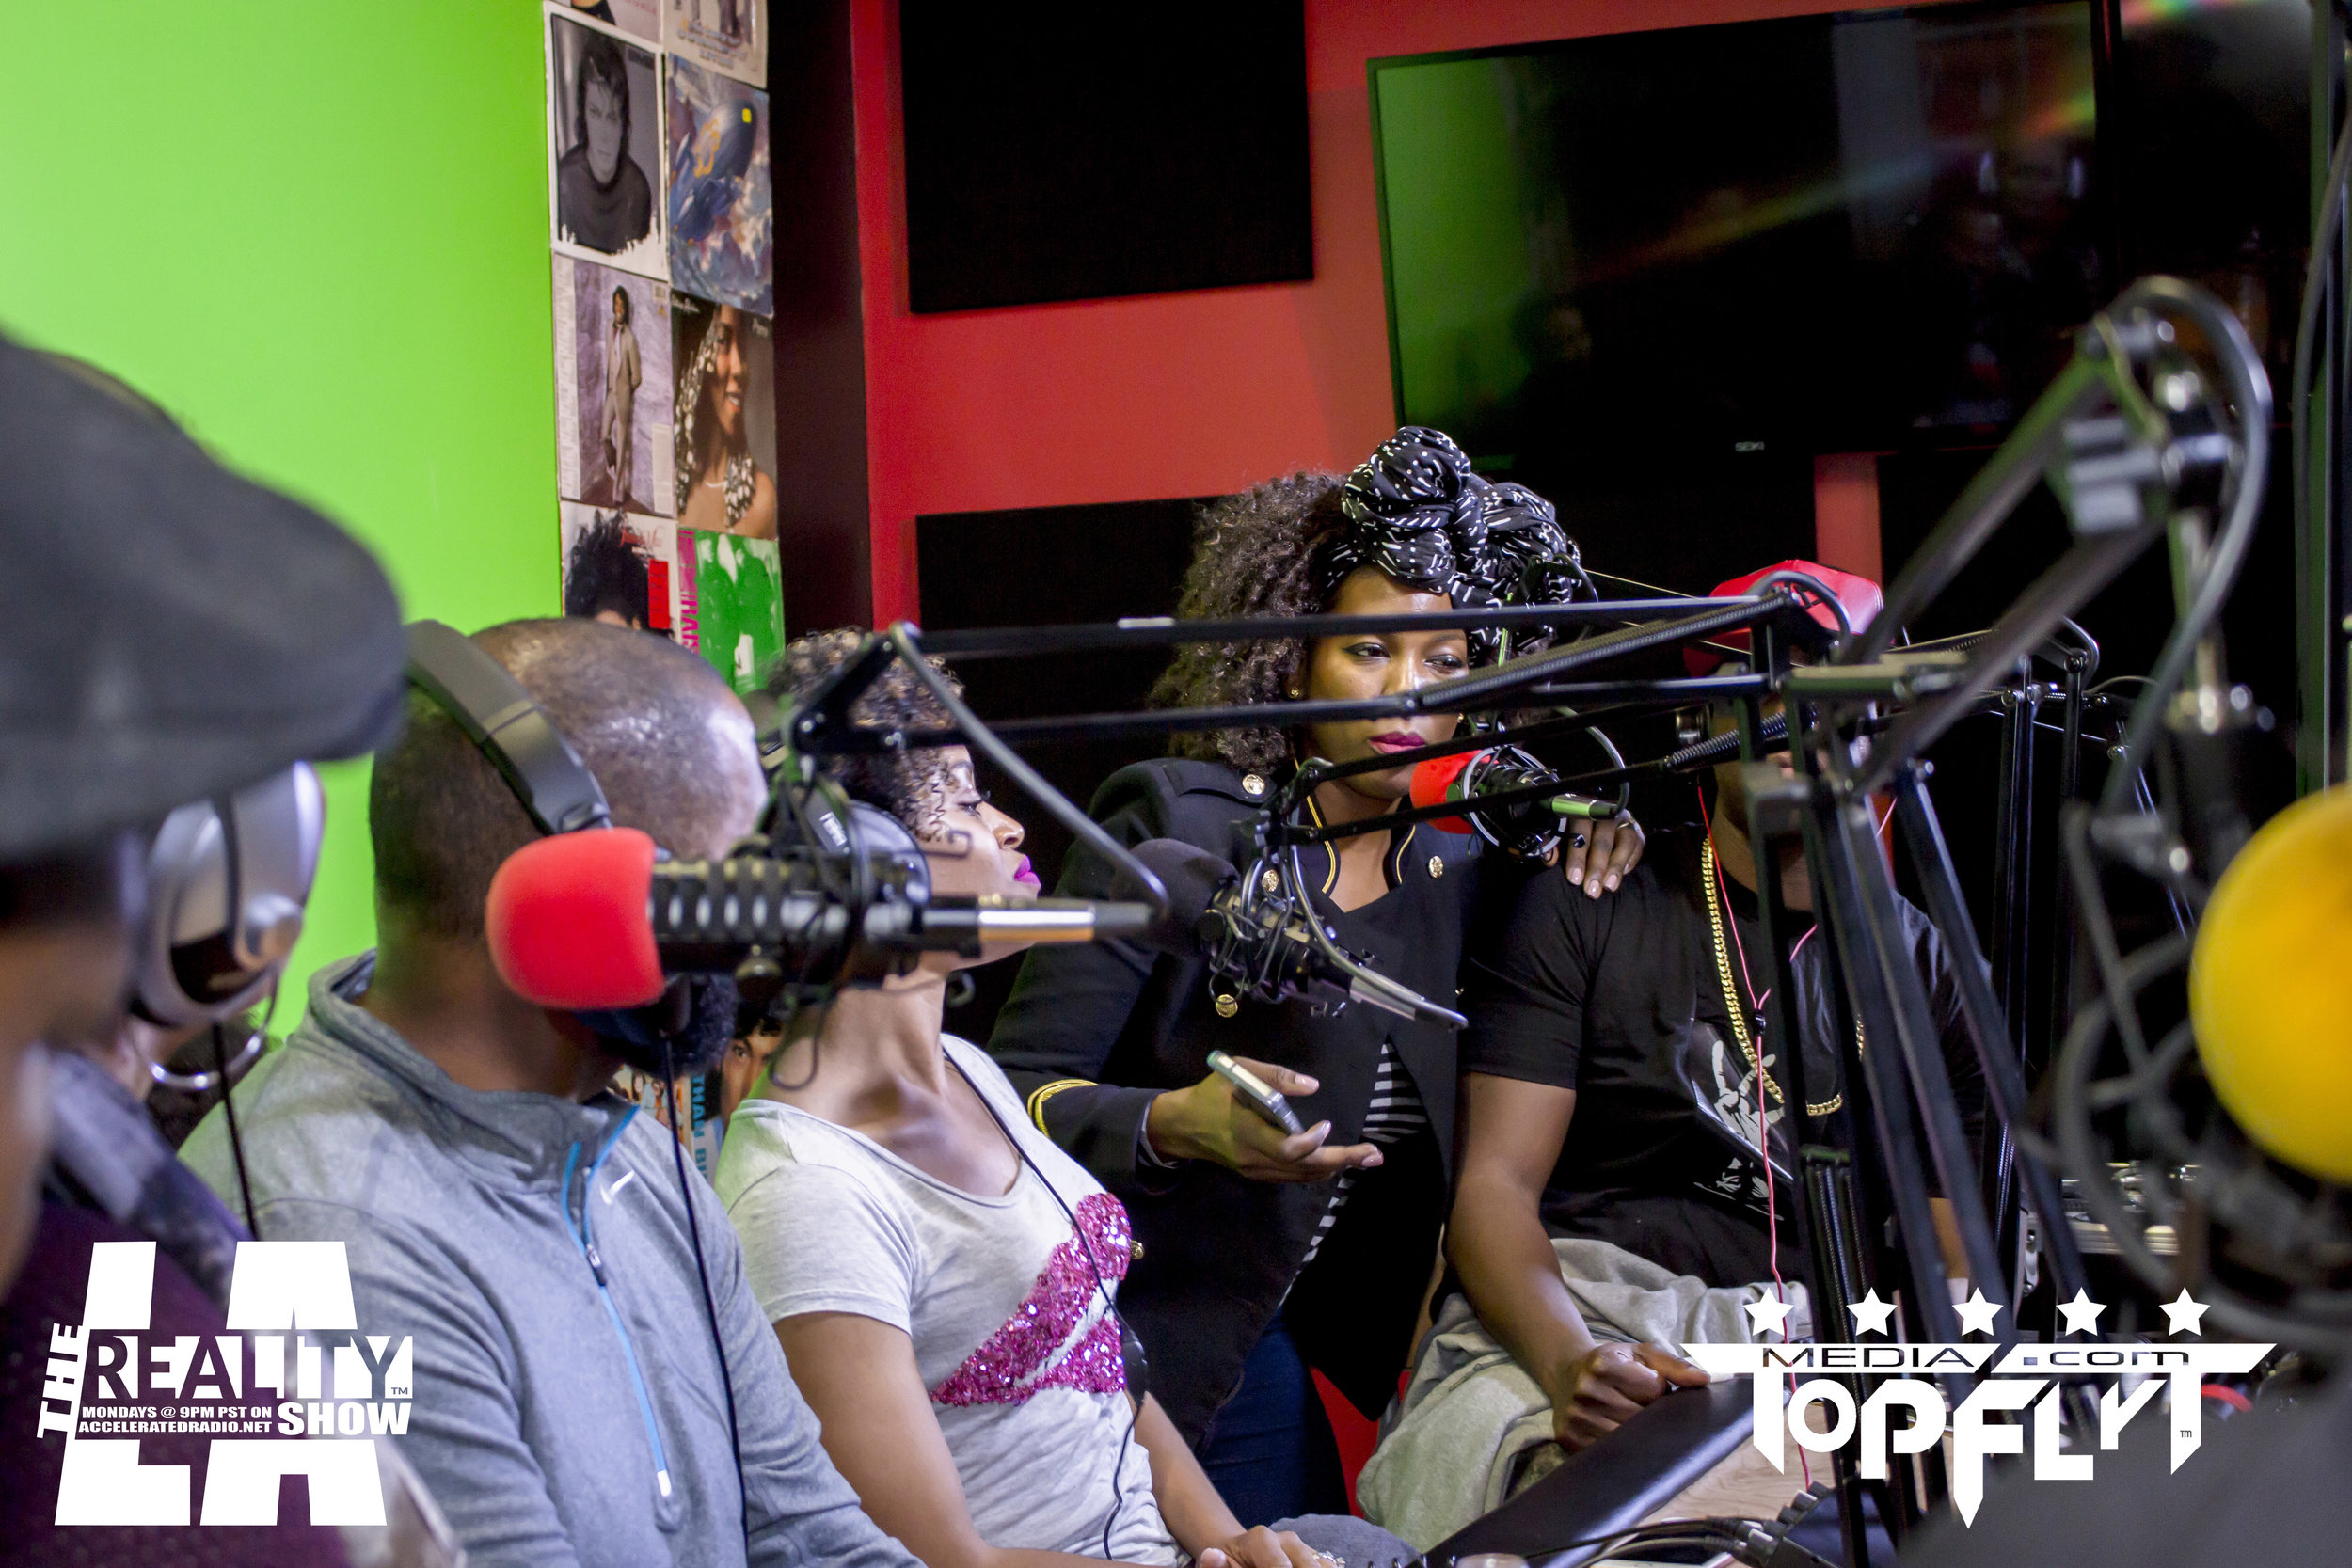 The Reality Show LA ft. Cast of FunnyMarriedStuff And Raquel Harris - 01-16-17_39.jpg